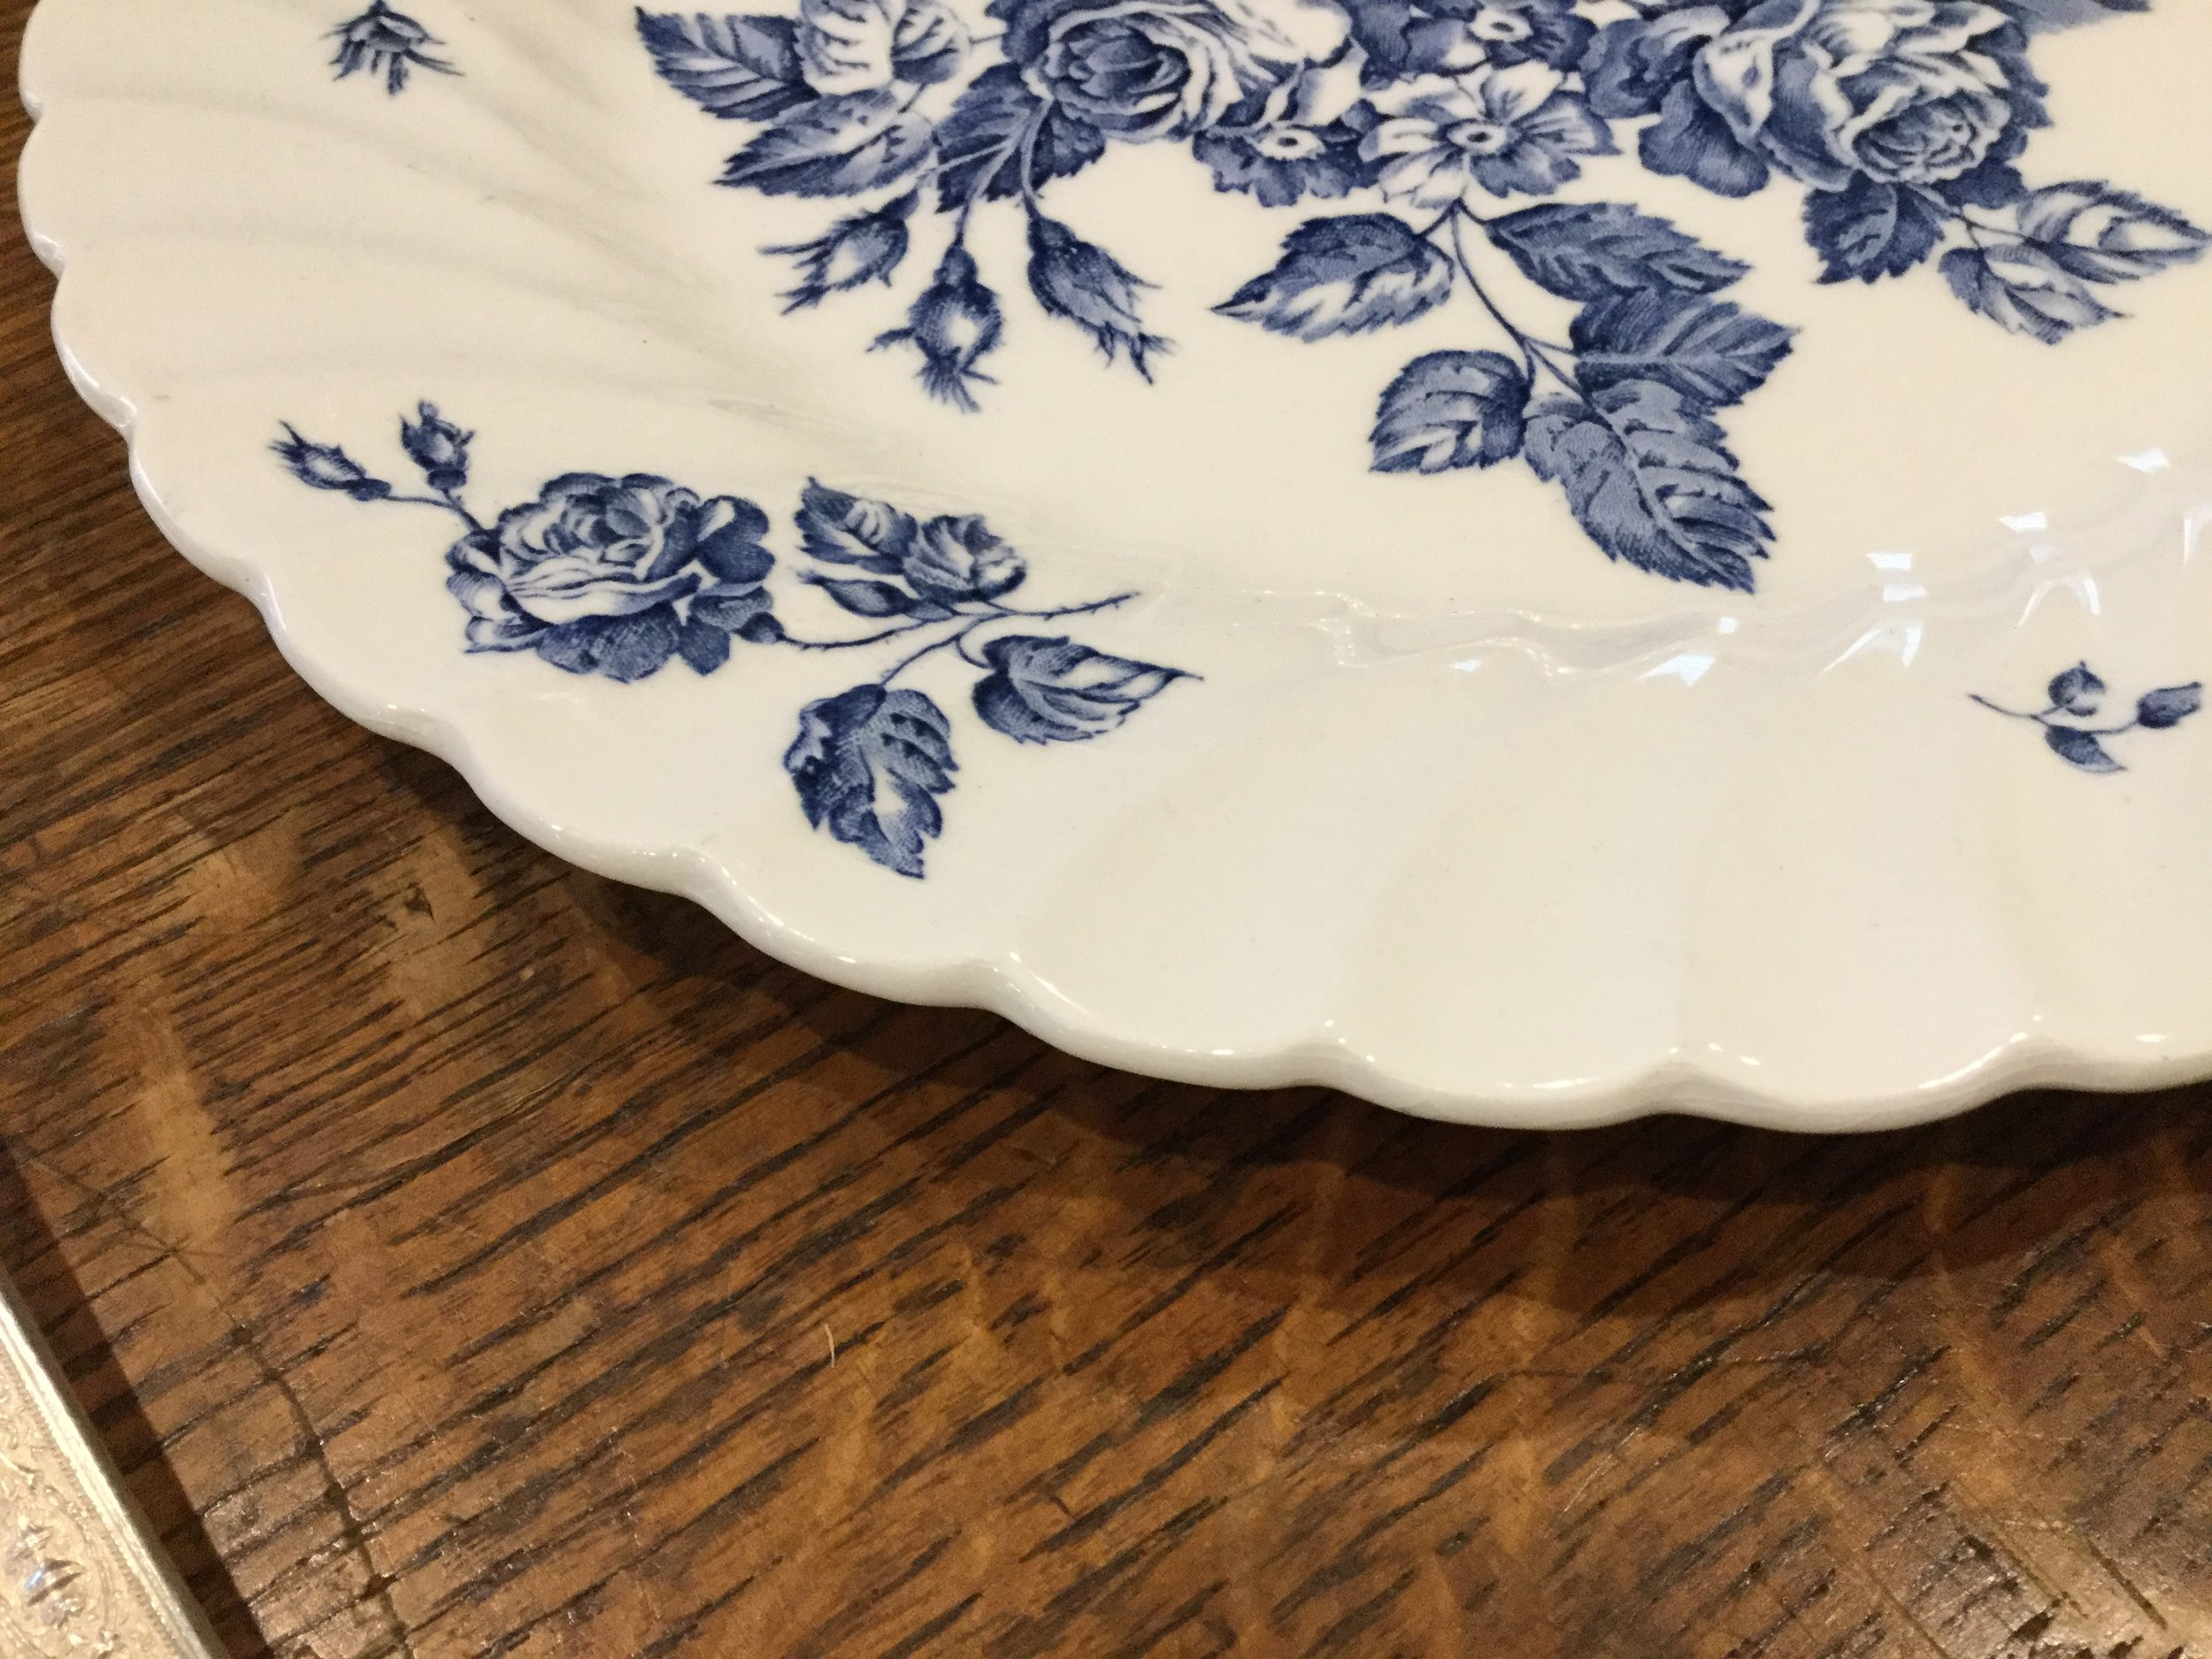 Mismatch Vintage Place Settings – Pricing available at request